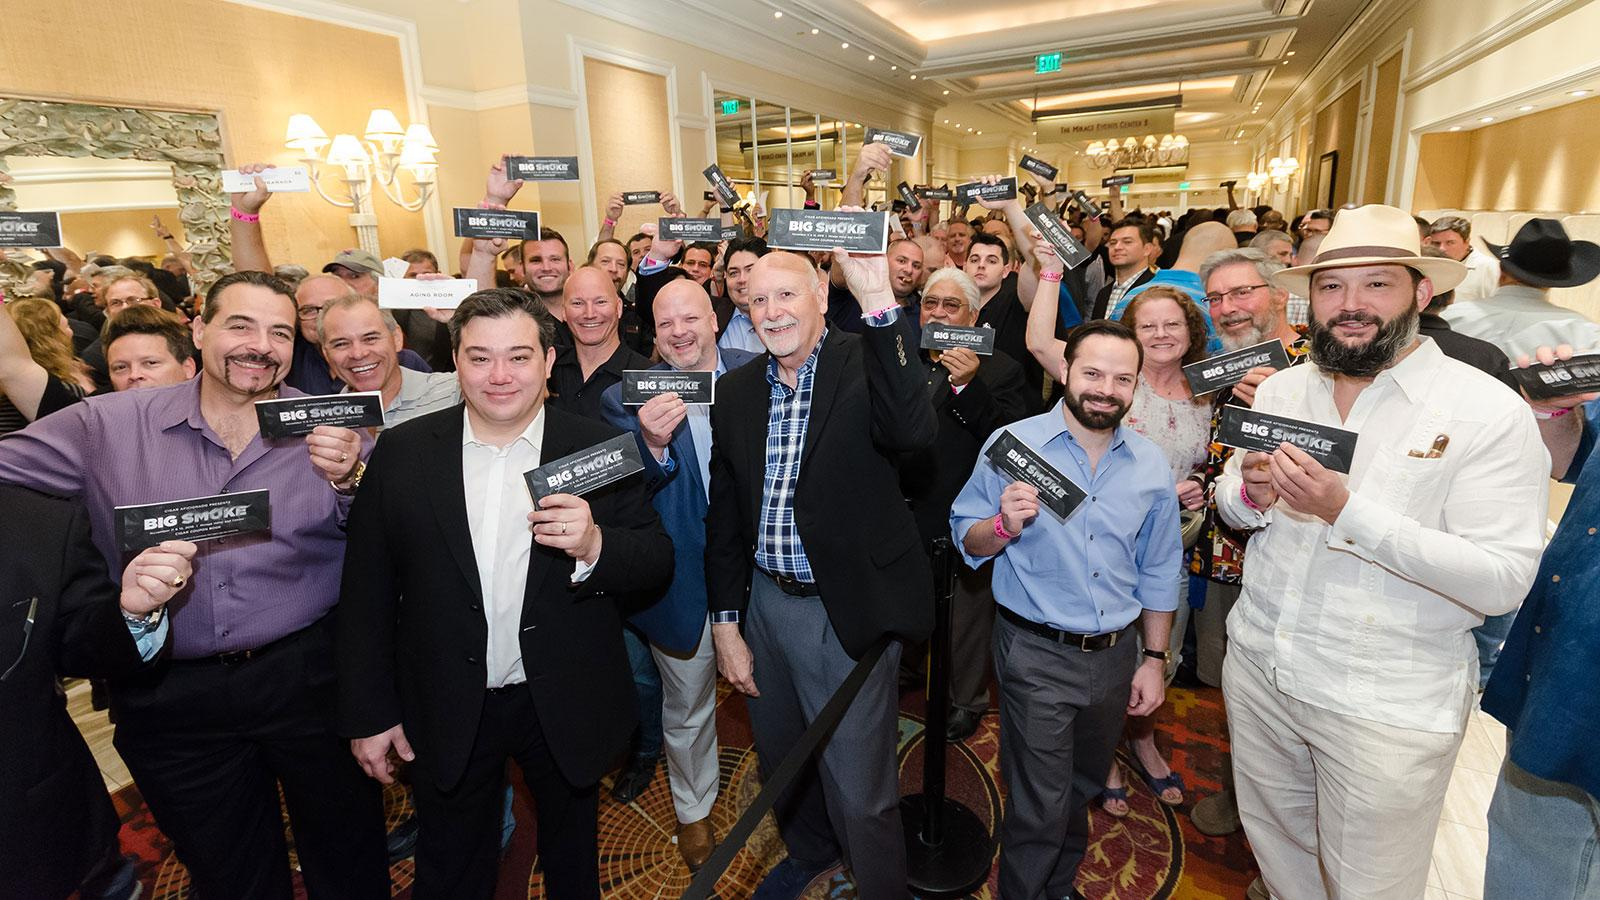 Cigar Fans Hit Smoking Jackpot at Big Smoke Las Vegas